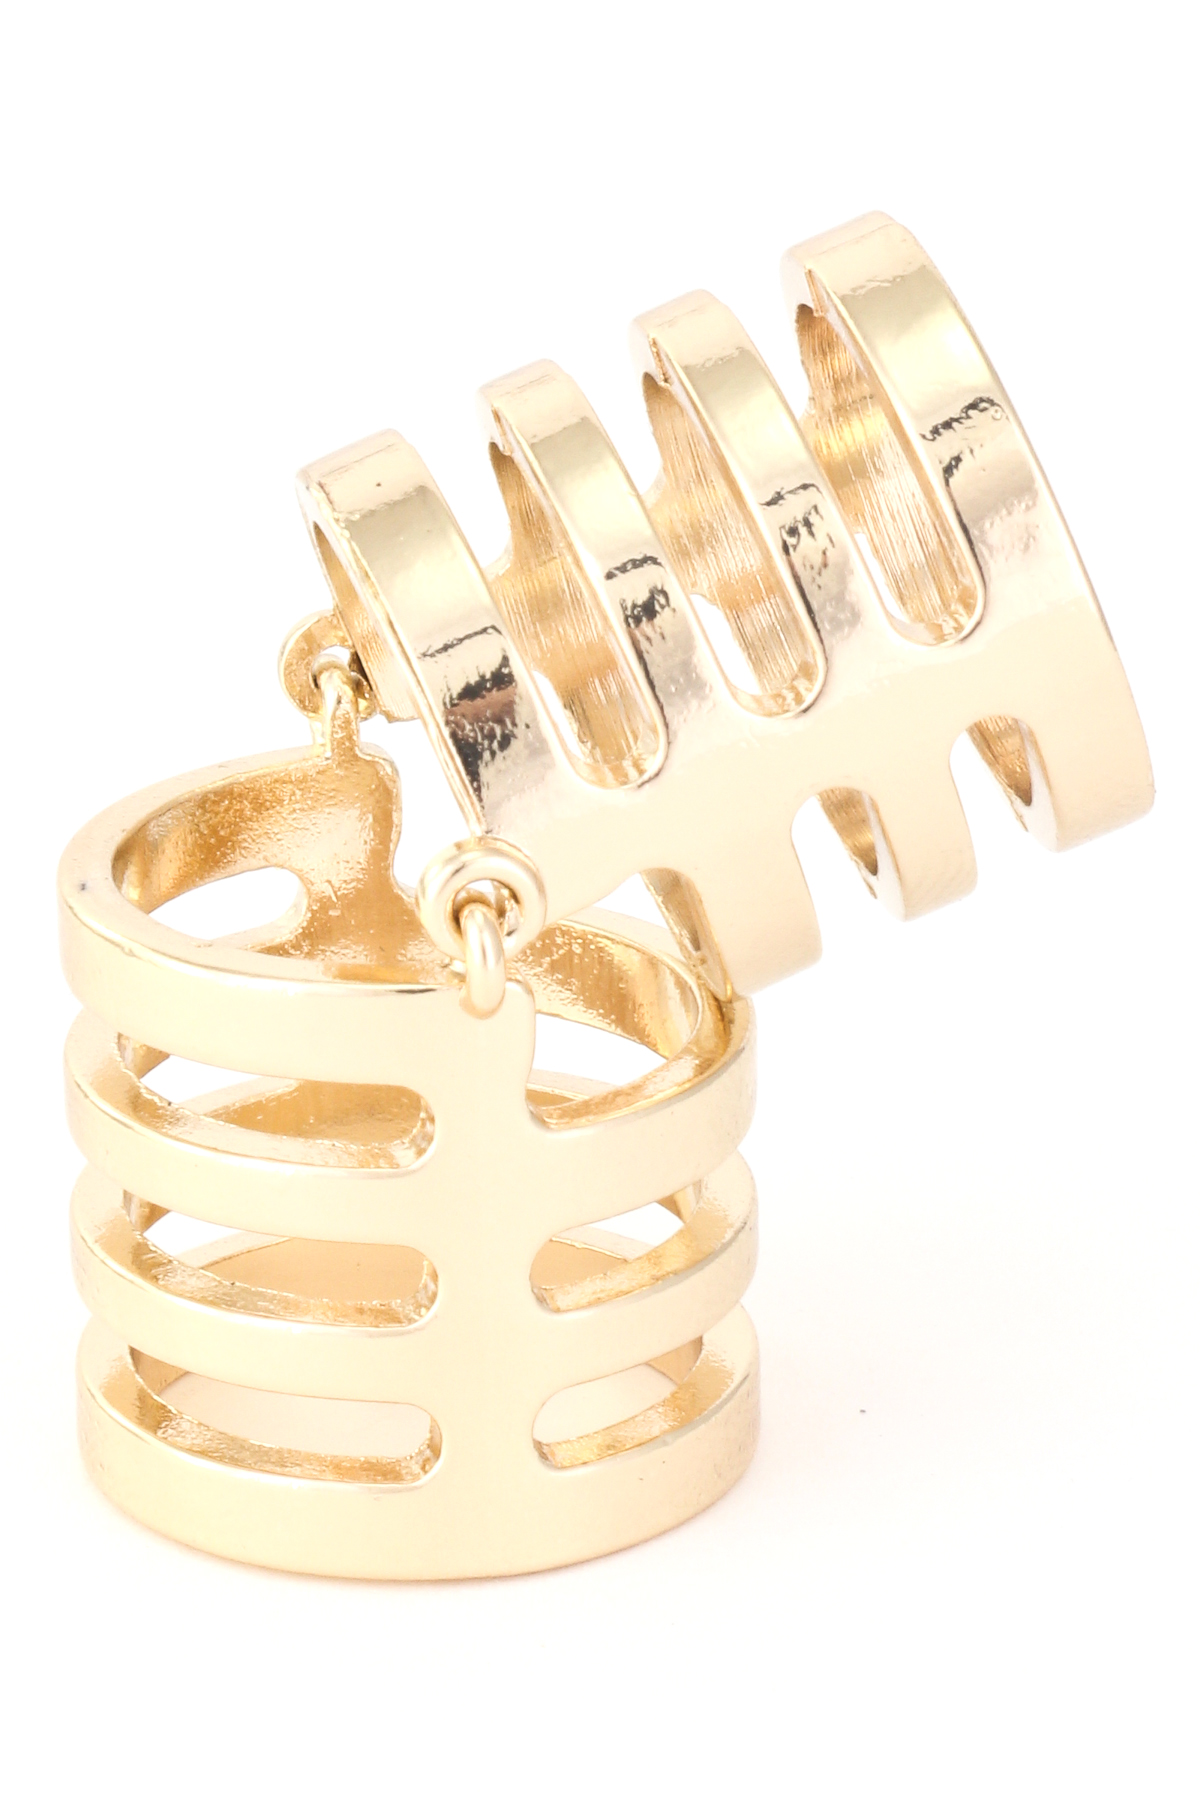 jewelry caged made raw pin by bangle rings rework quartz creative